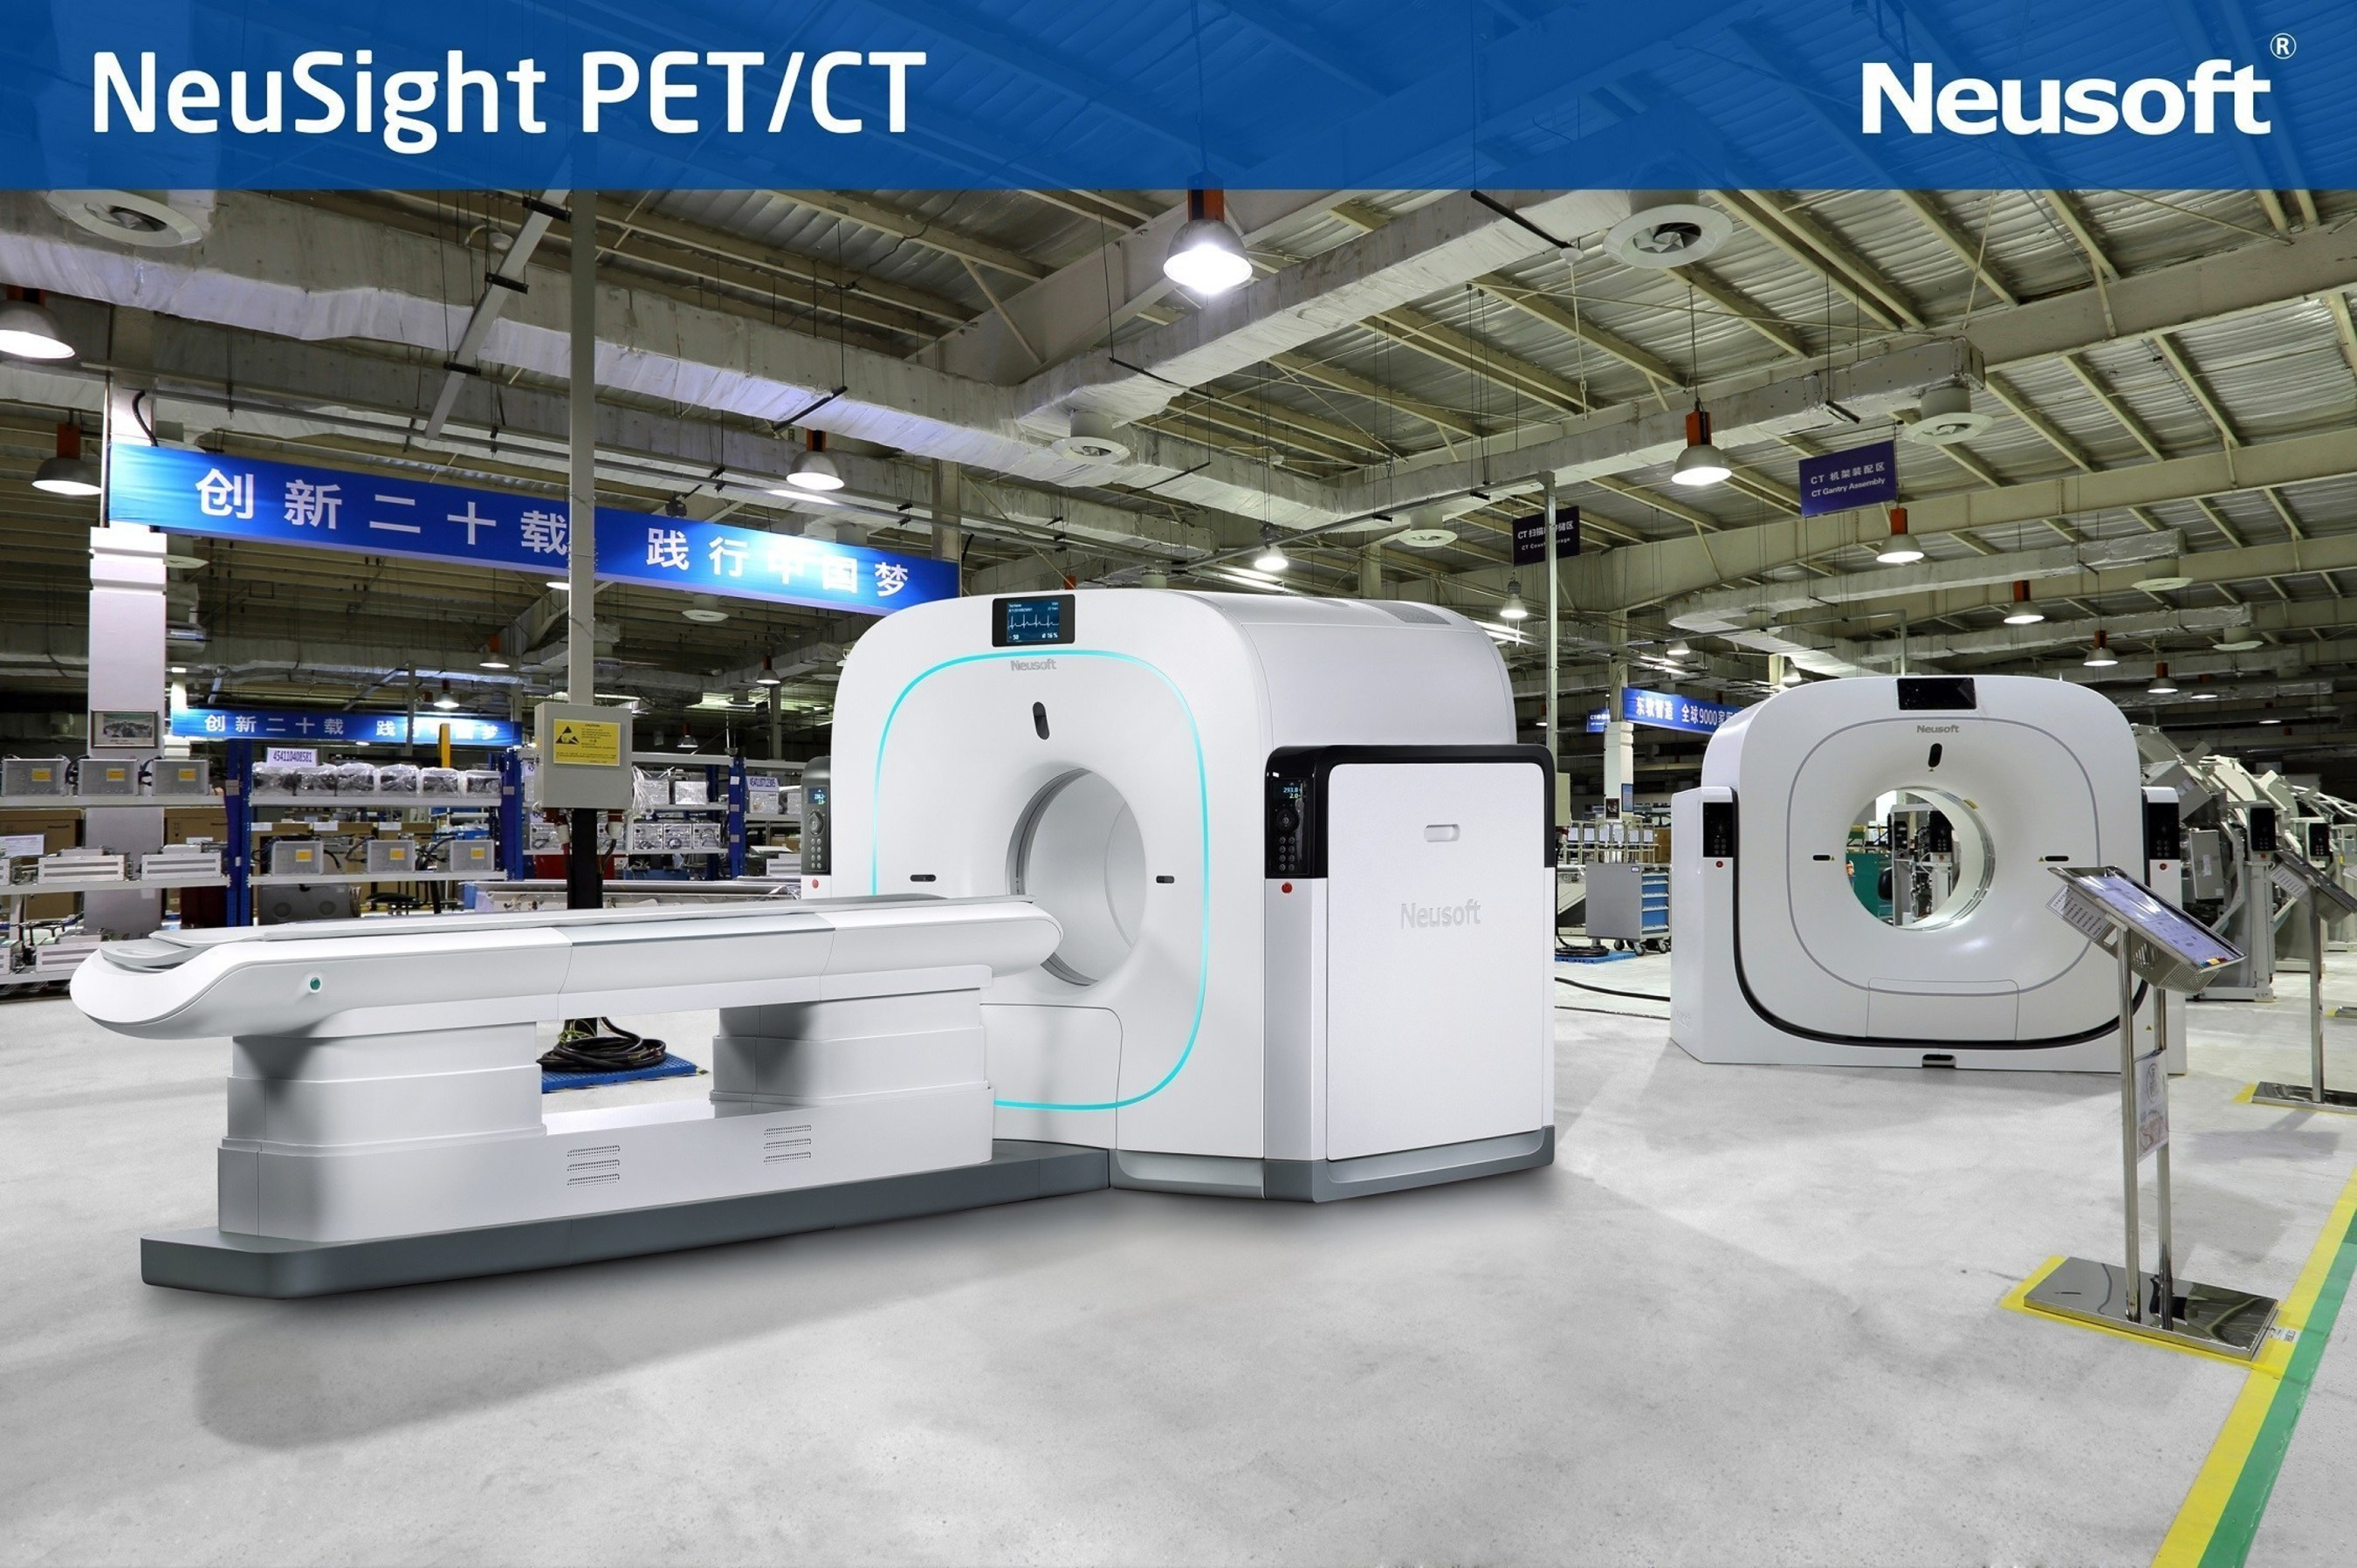 Neusoft lance le TEP-CT NeuSight sur le marché international